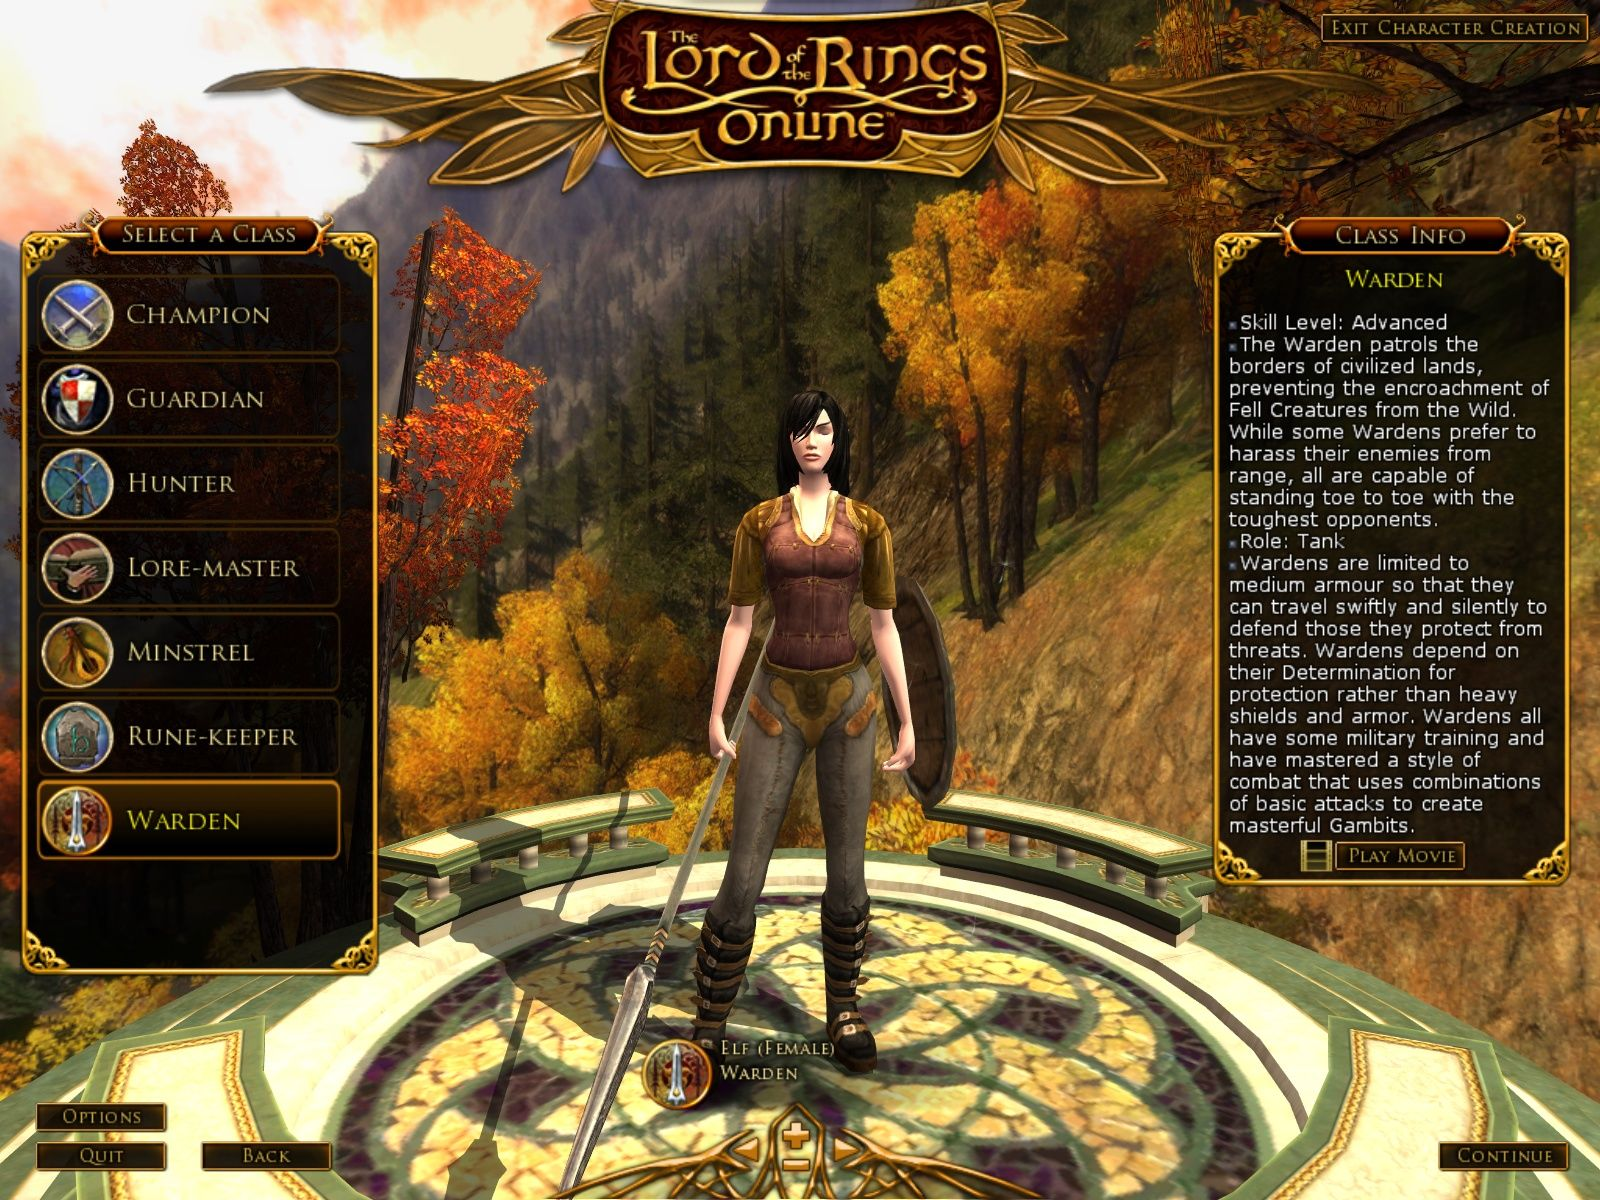 Where Can I Read The Lord Of The Rings Online